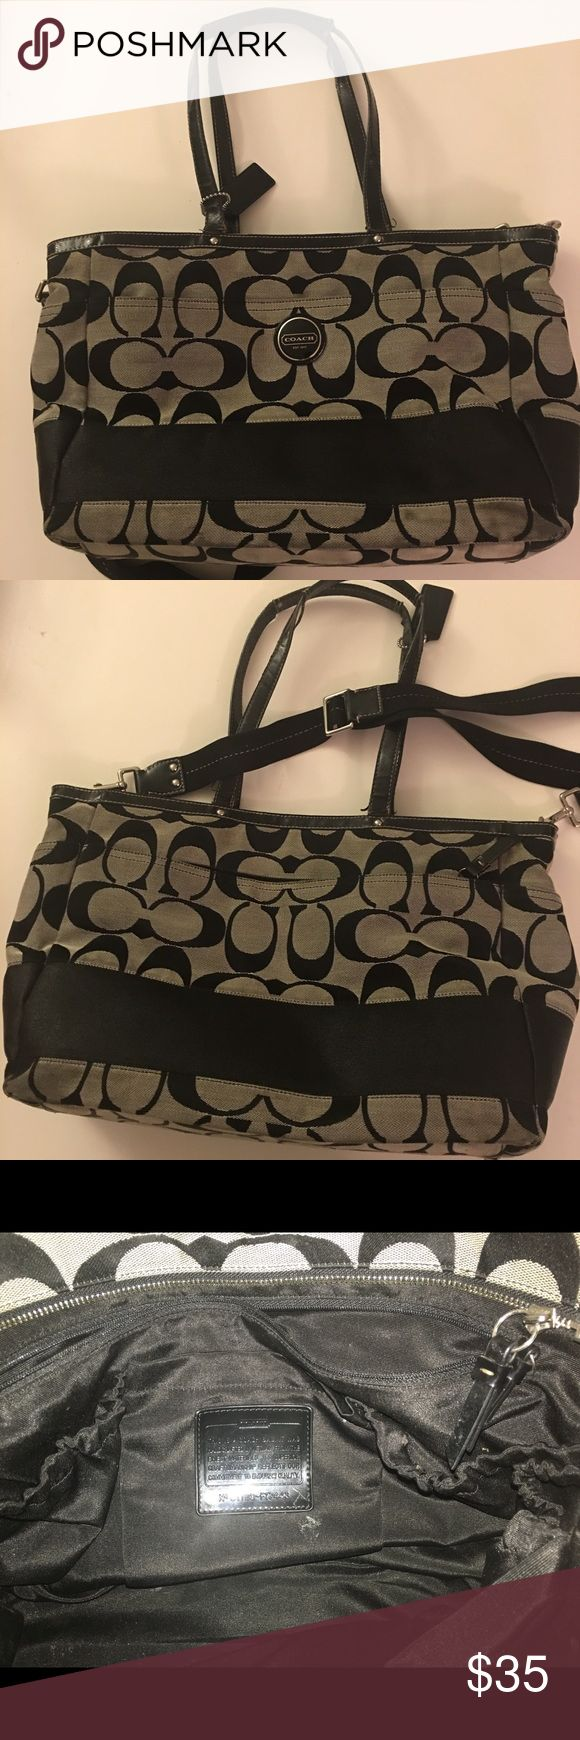 Authentic Coach Diaper bag Black Coach Diaper bag gently used. Over the shoulder strap, two handles and tons of storage and pockets. Coach Bags Baby Bags